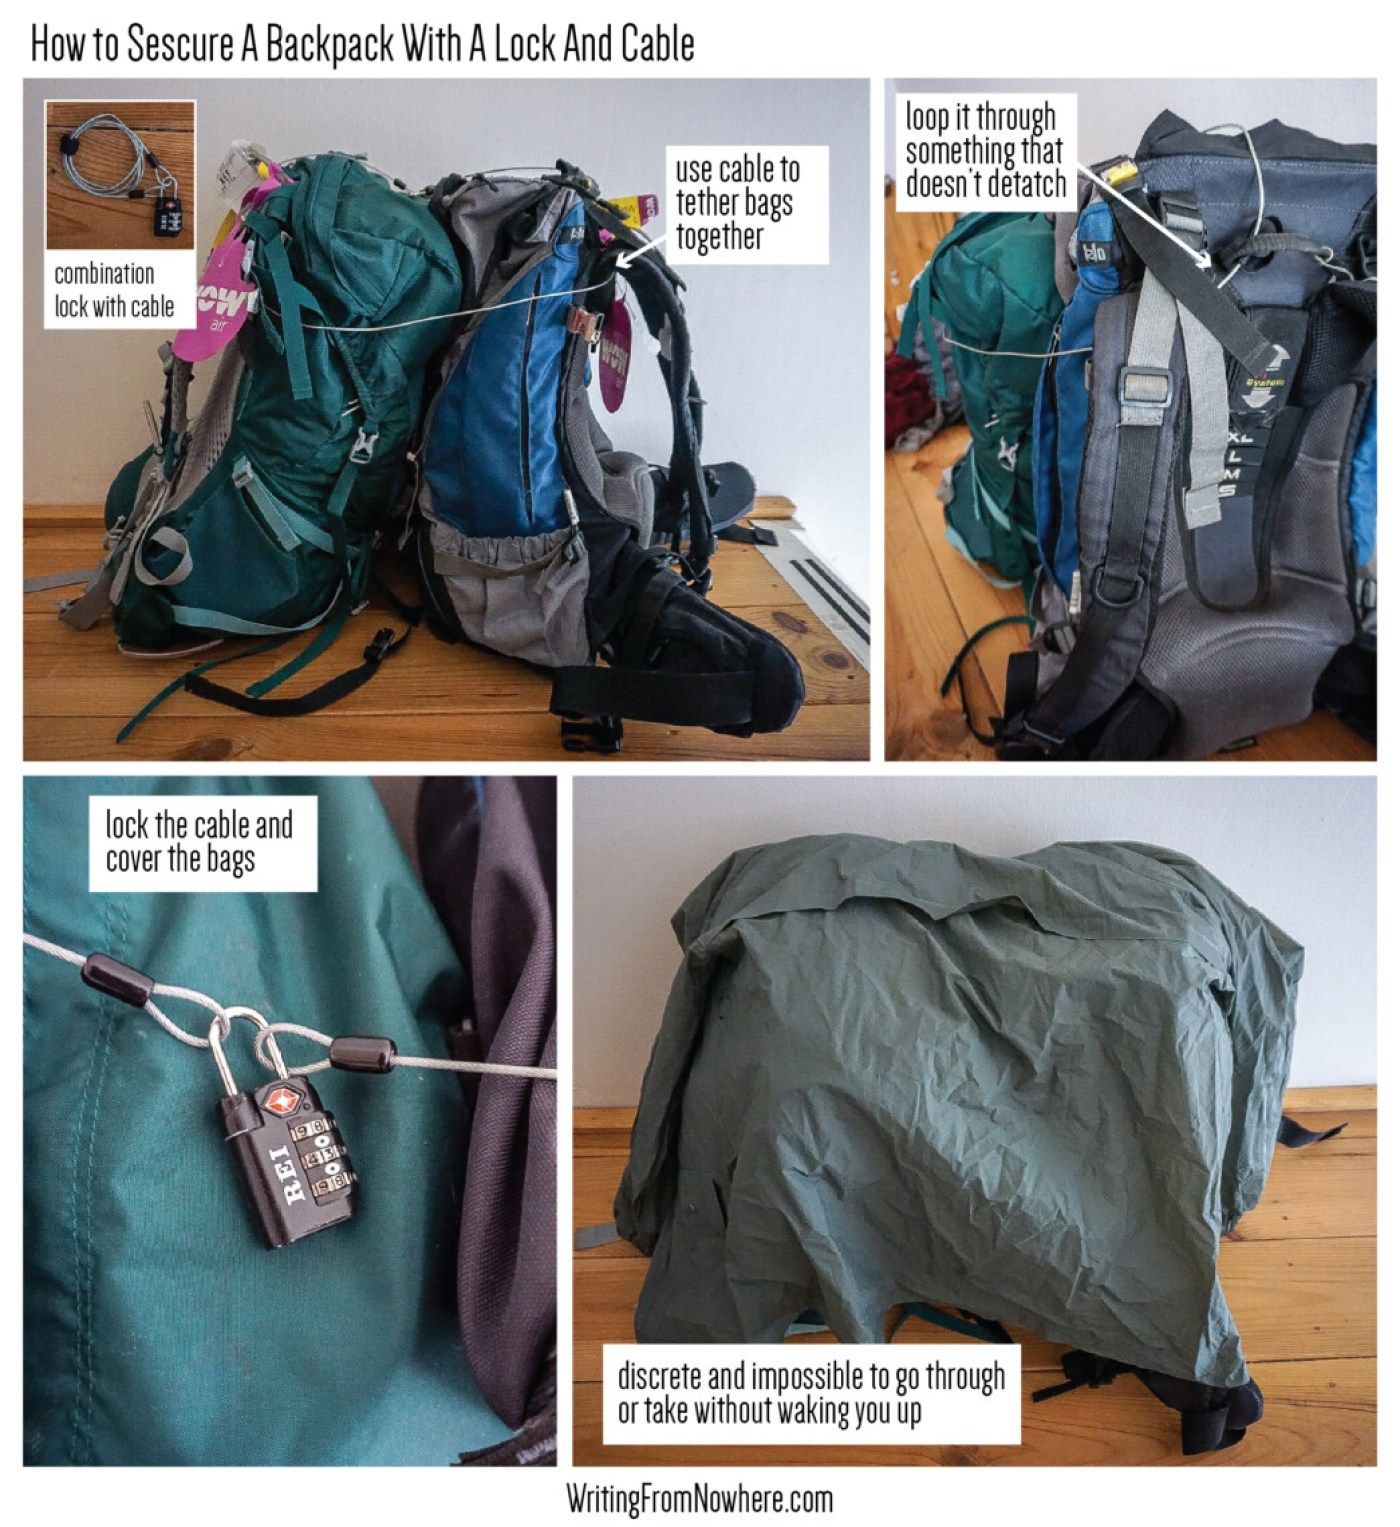 how to secure your bag with a lock and cable_Artboard 17-14.jpg